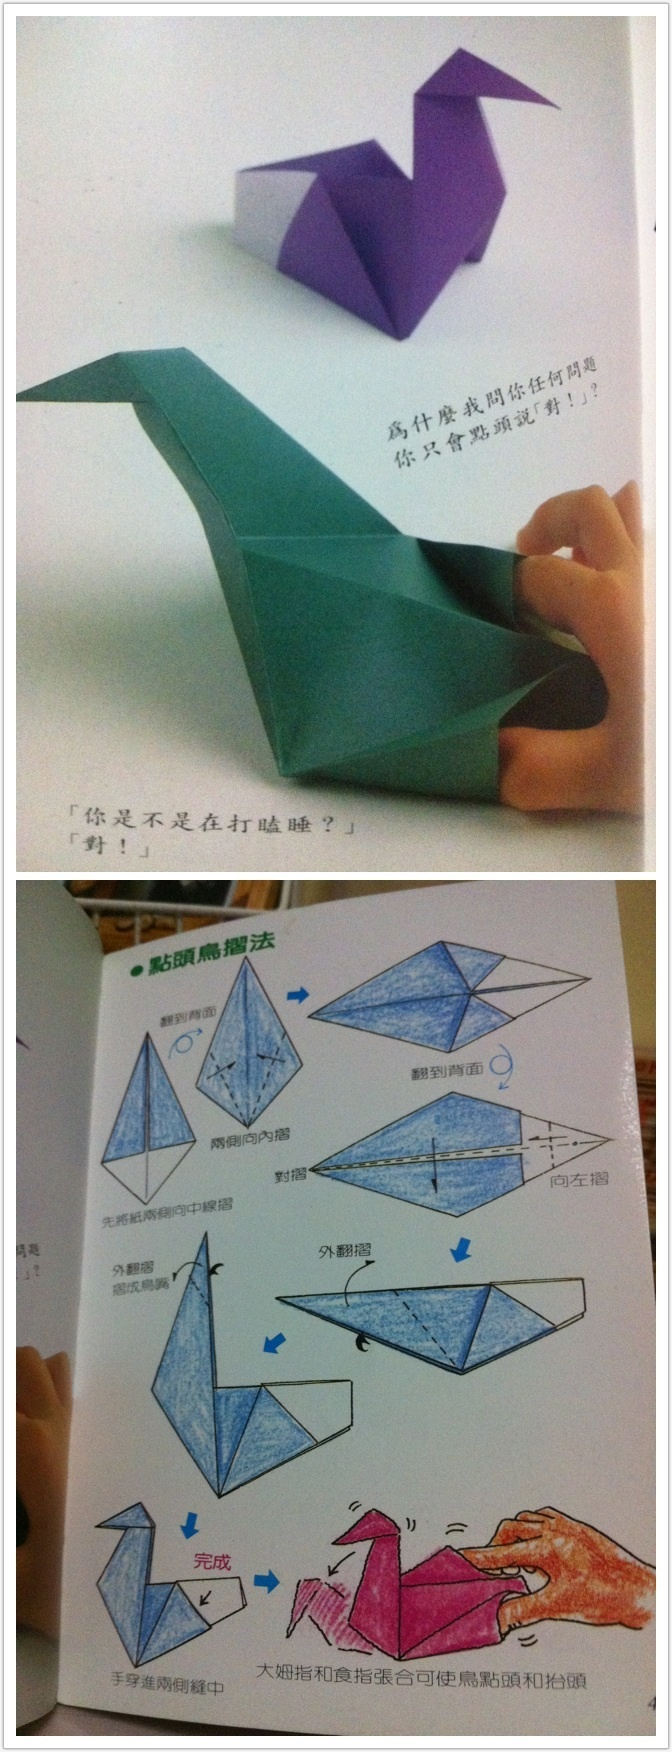 Origami bamboo letterfold folding instructions - Origami Crane Type 3